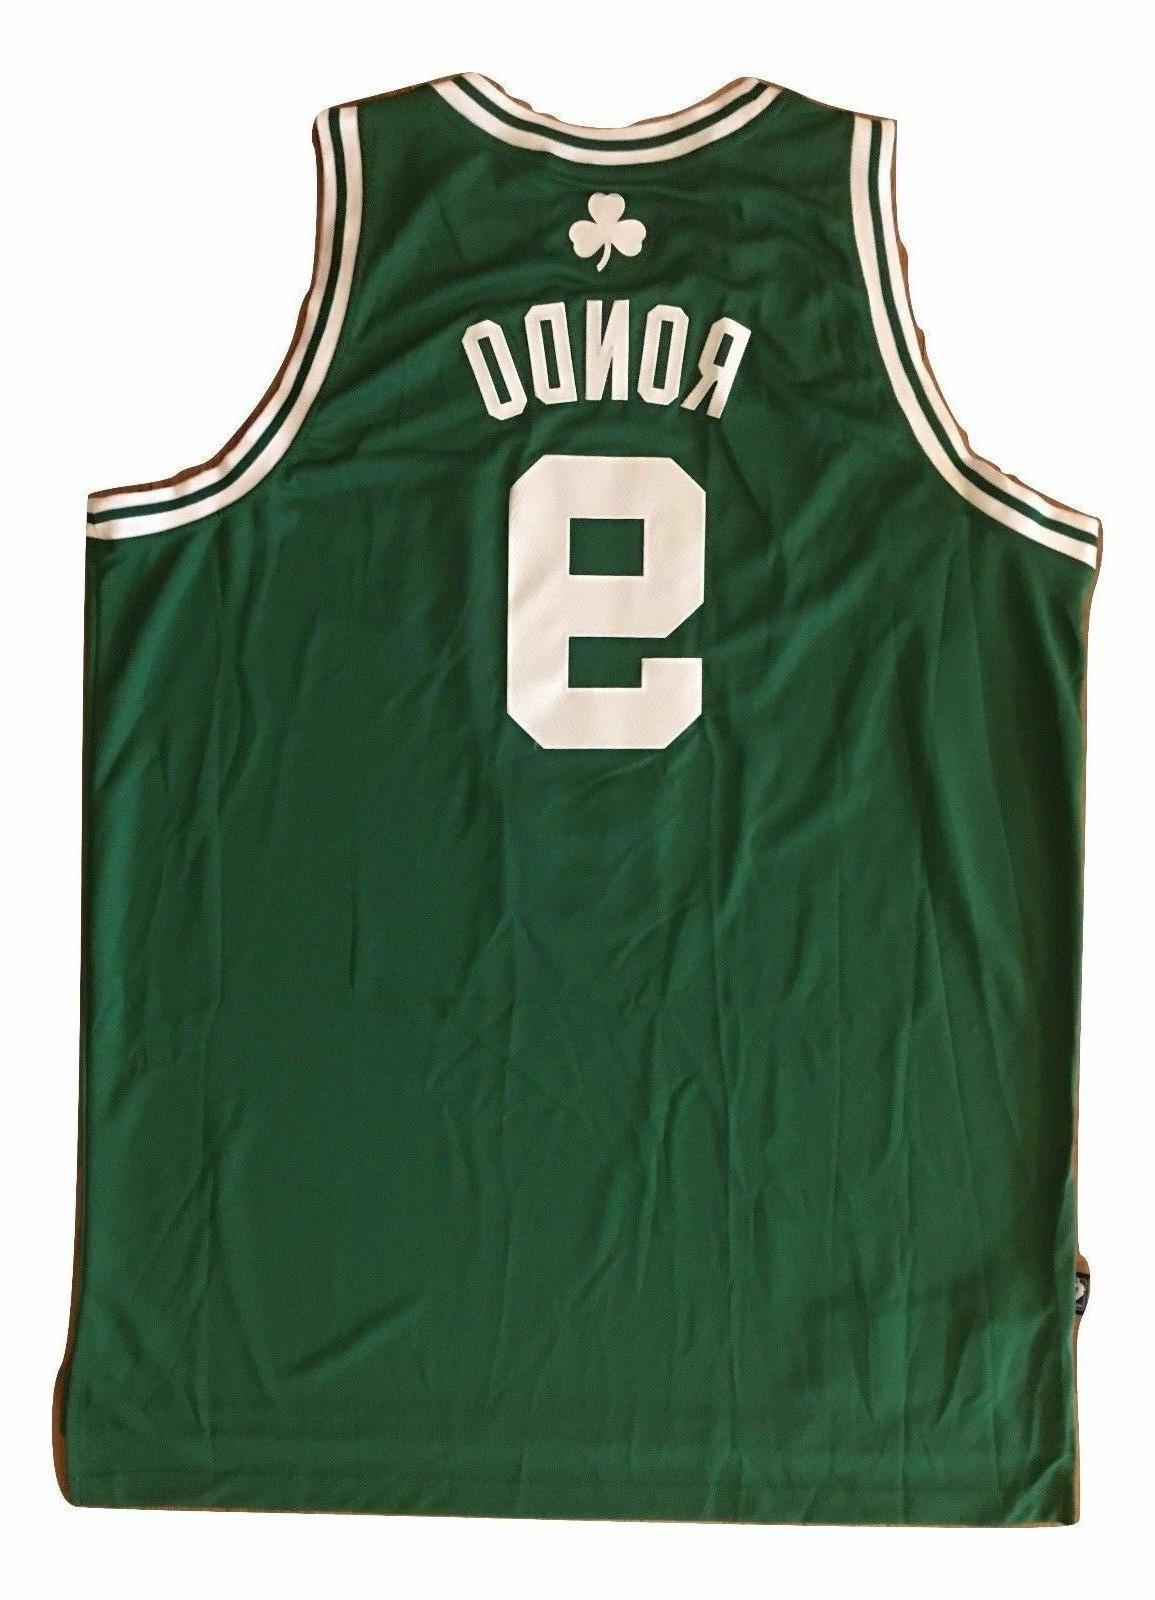 BOSTON RONDO NWT